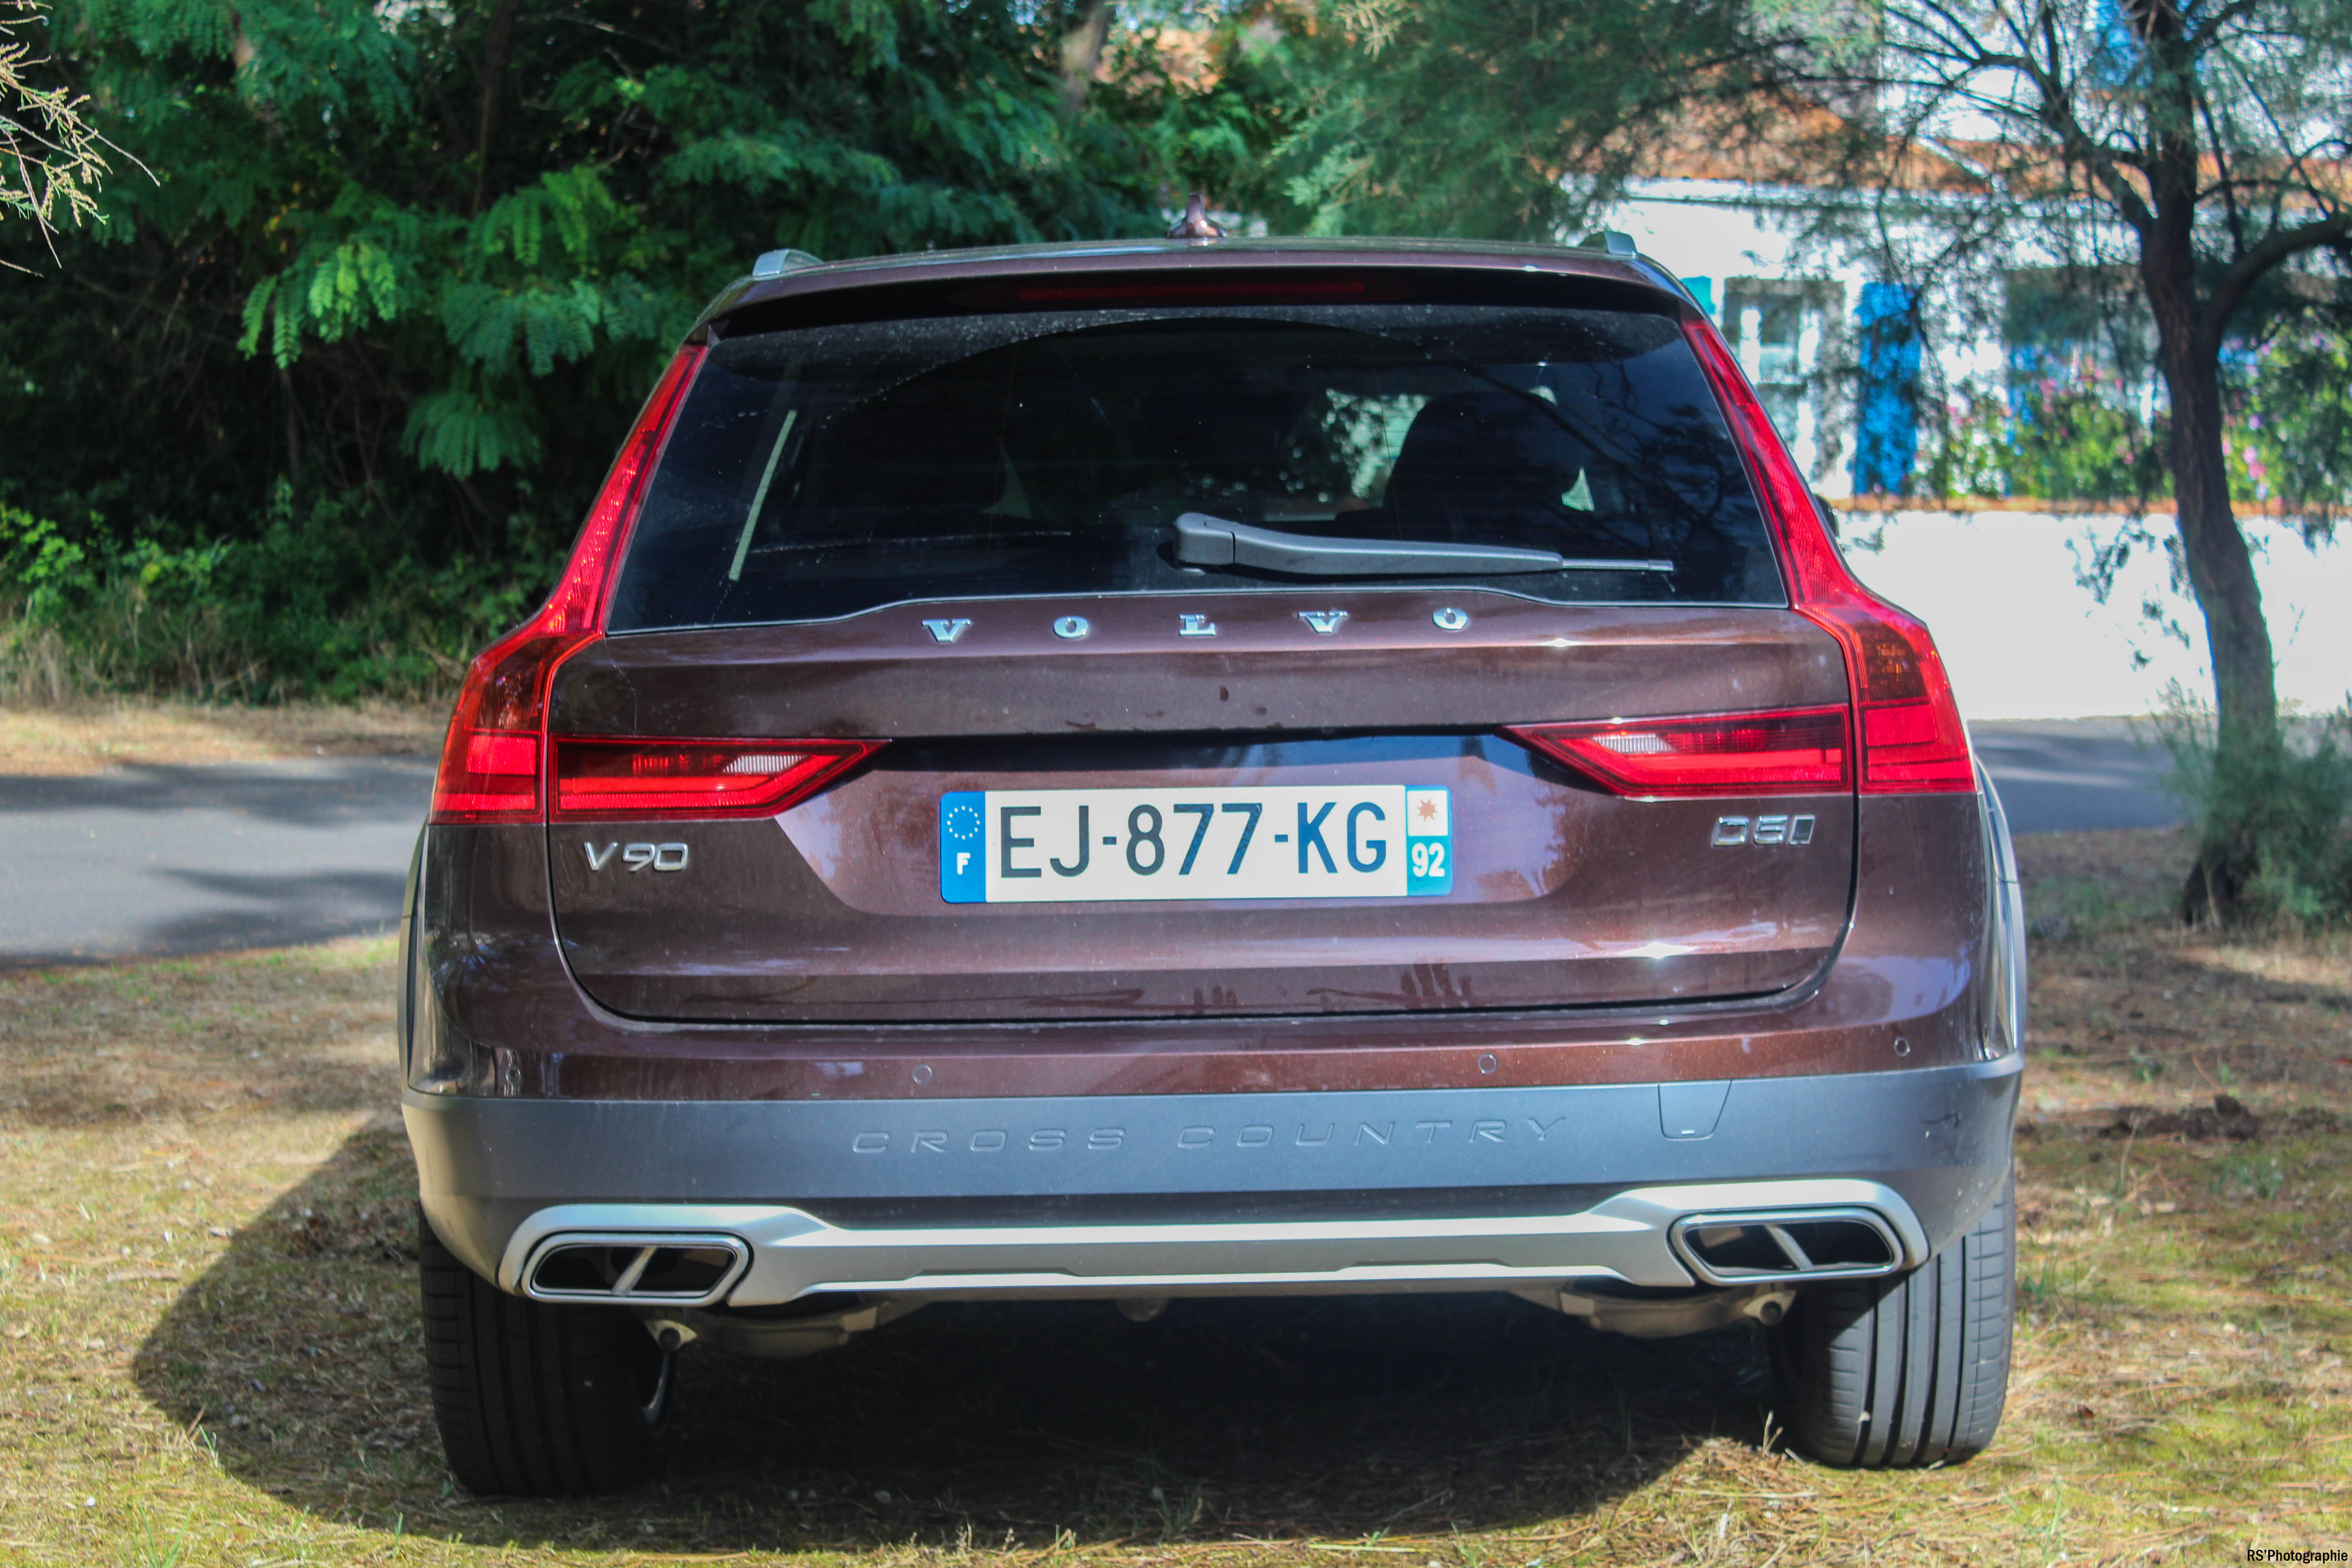 VolvoV90CrossCountry9-volvo-v90-d5-crosscountry-arriere-rear-Arnaud Demasier-RSPhotographie